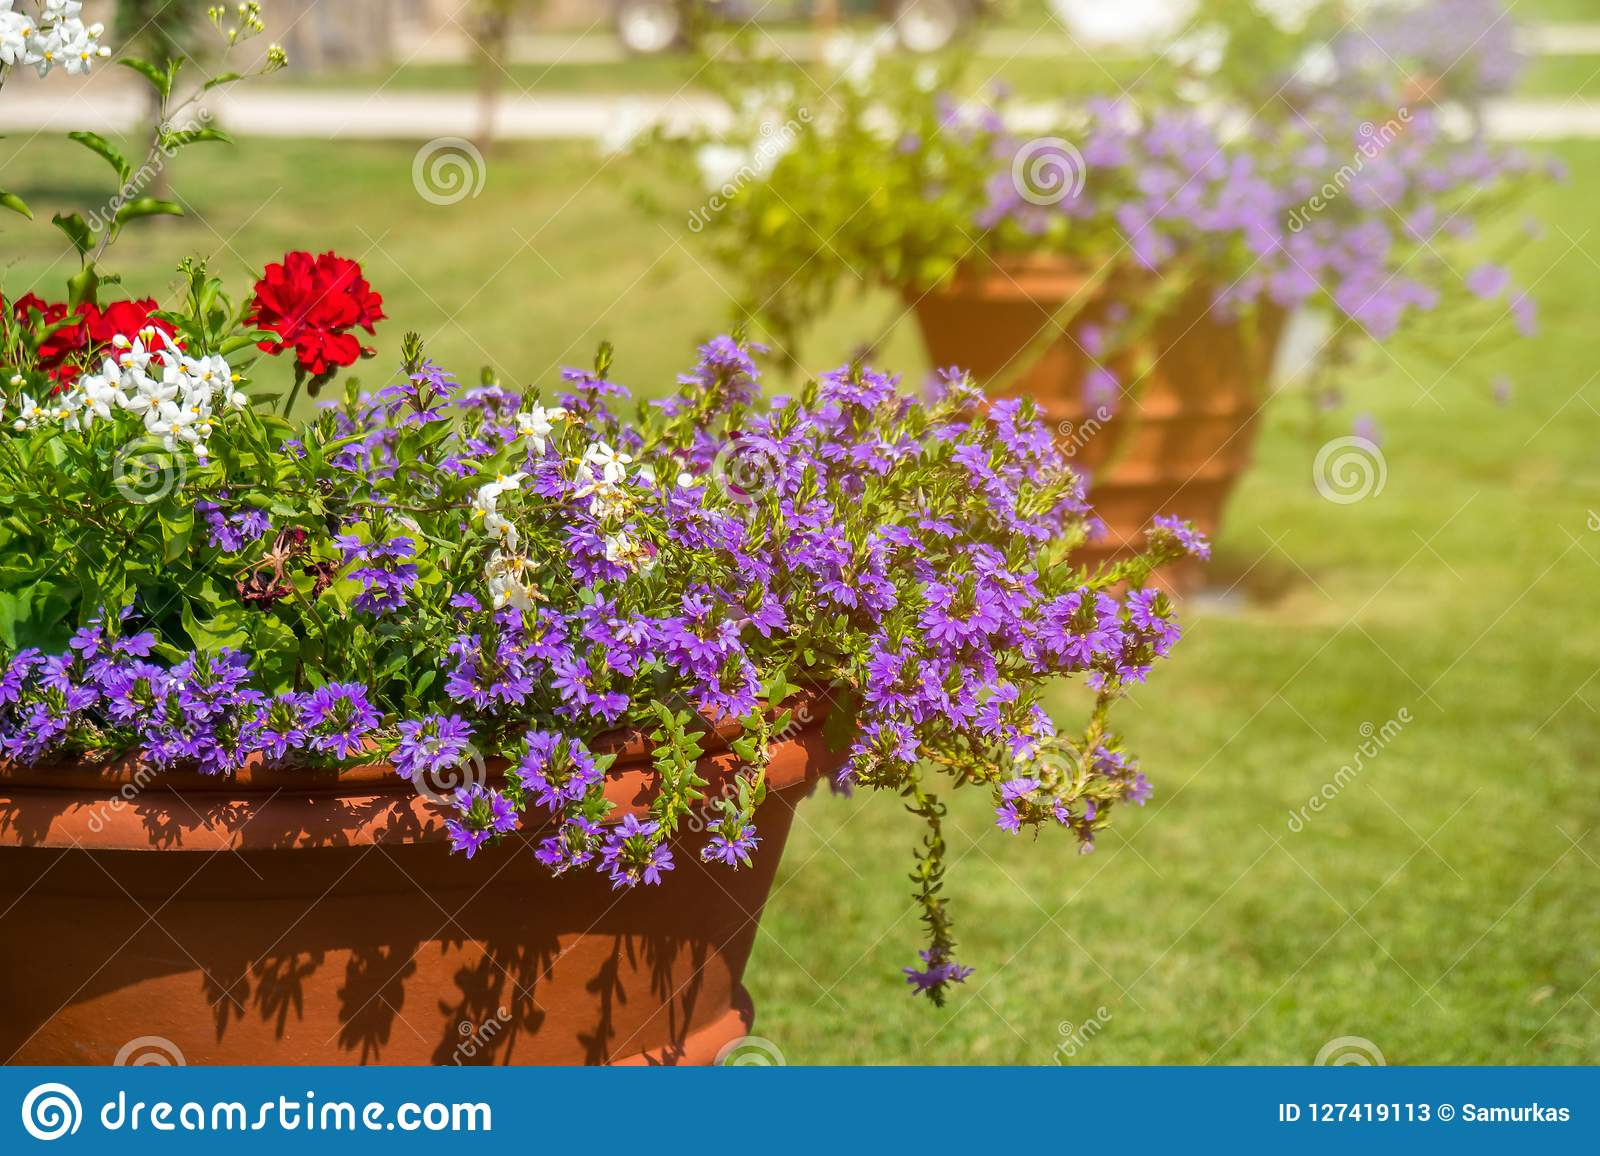 Beautiful Colored Potted Flowers In A Park On A Sunny Day Stock